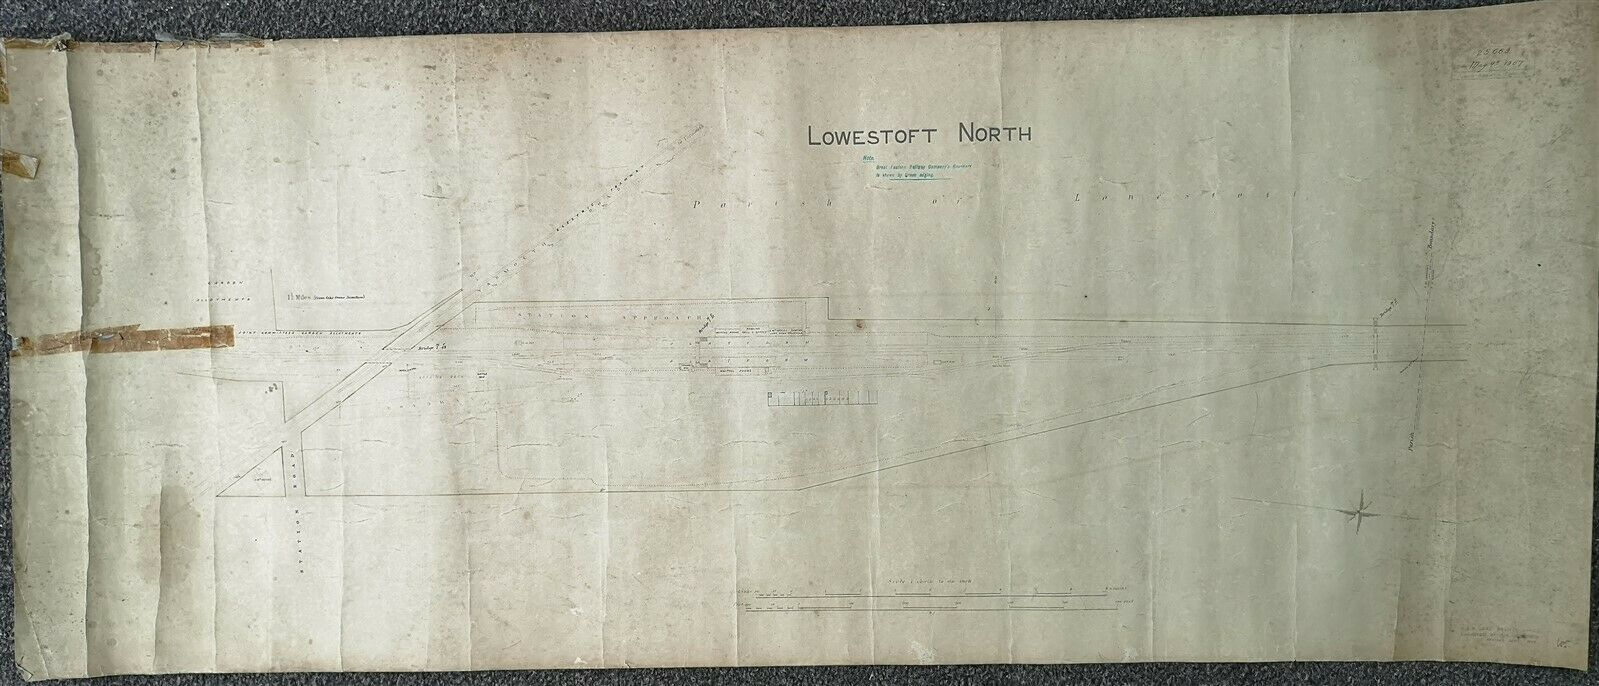 GER GREAT EASTERN RAILWAY LARGE PLAN LOWESTOFT NORTH DIAGRAM MAP 1905